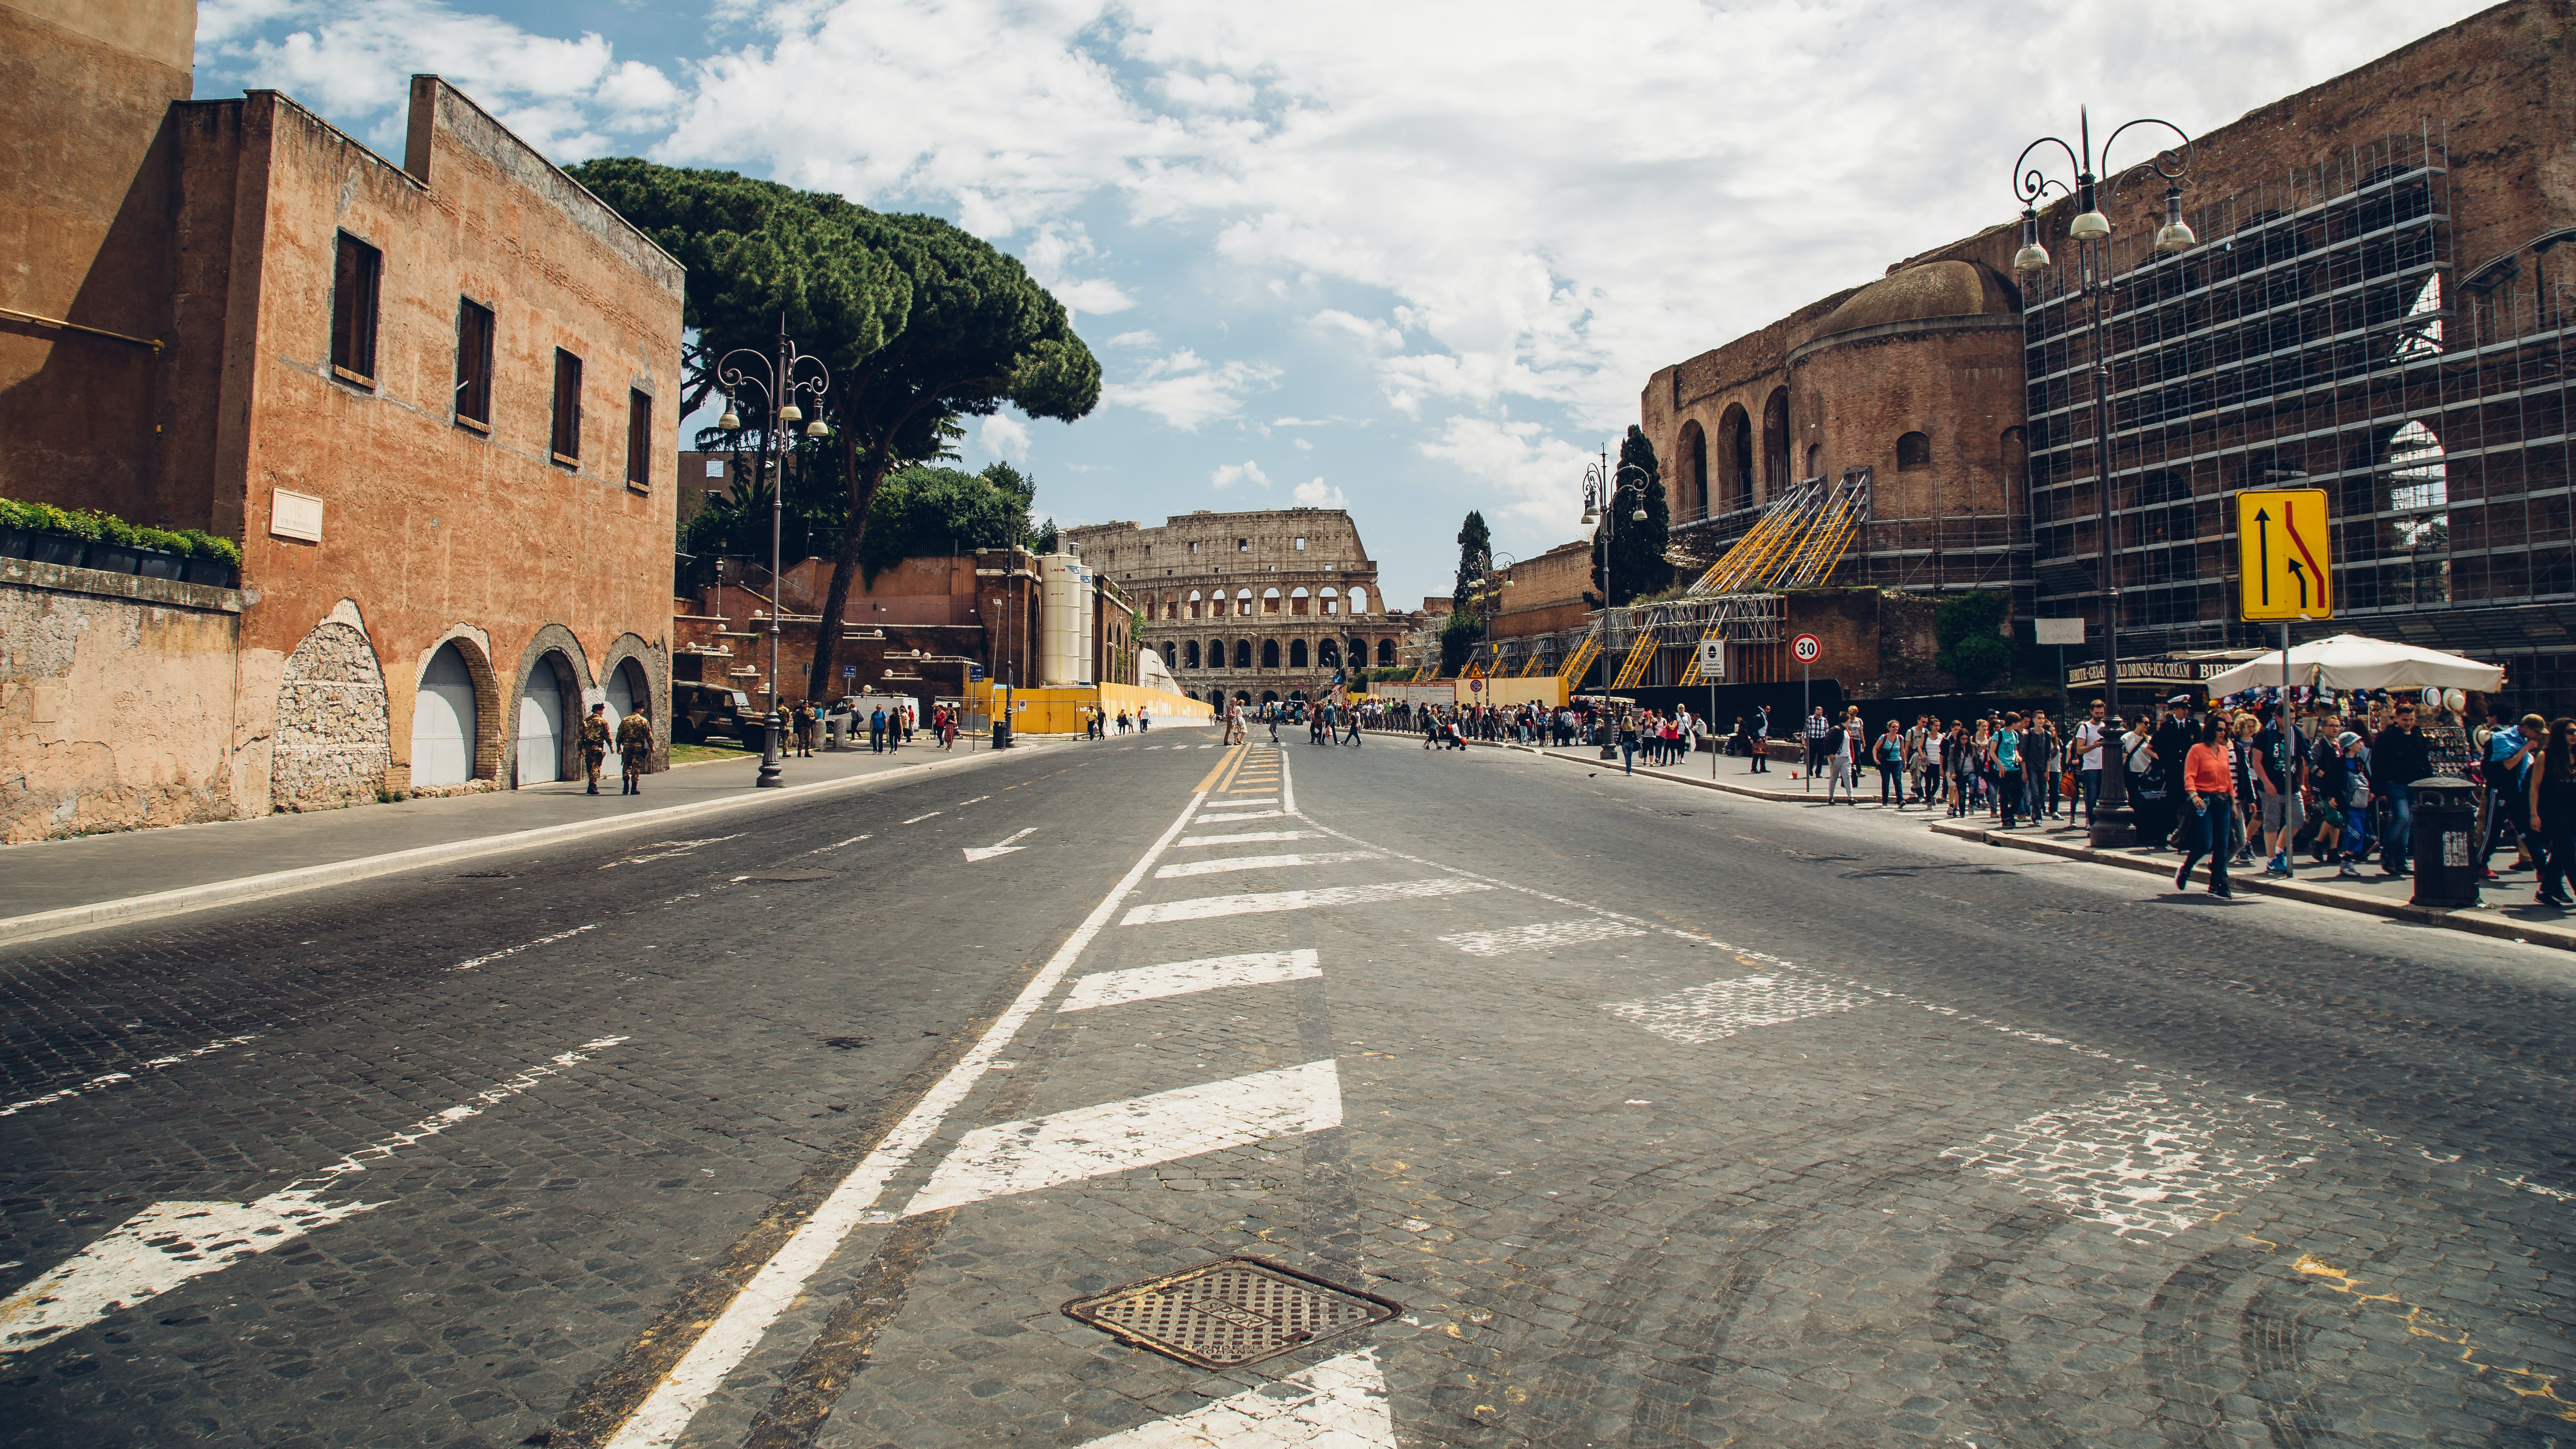 The Coliseum in Rome at the end of a street